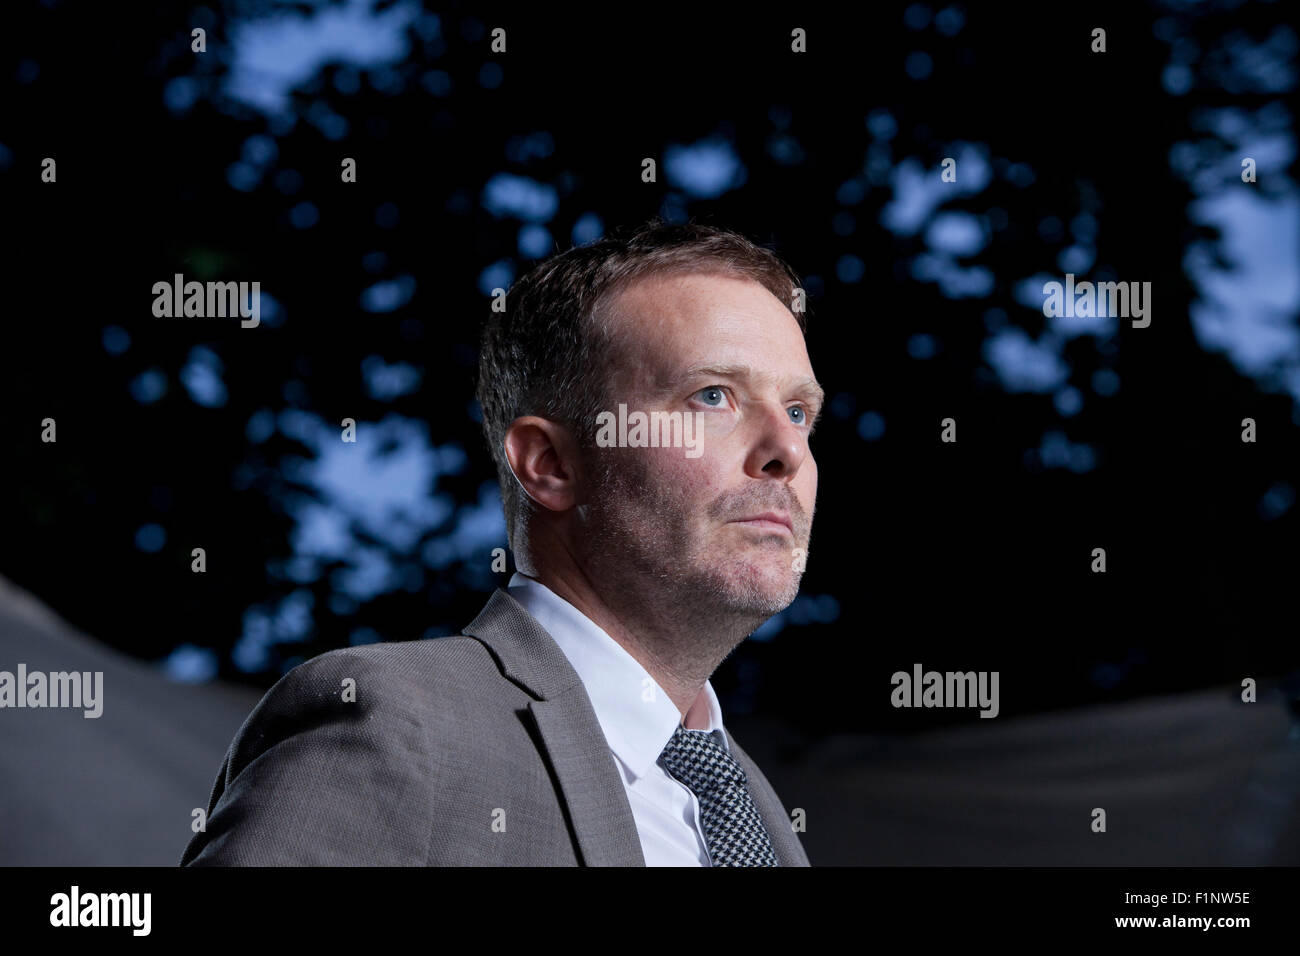 Tom McCarthy, the English novelist, writer, and Man Booker Prize Nominee, at the Edinburgh International Book Festival - Stock Image